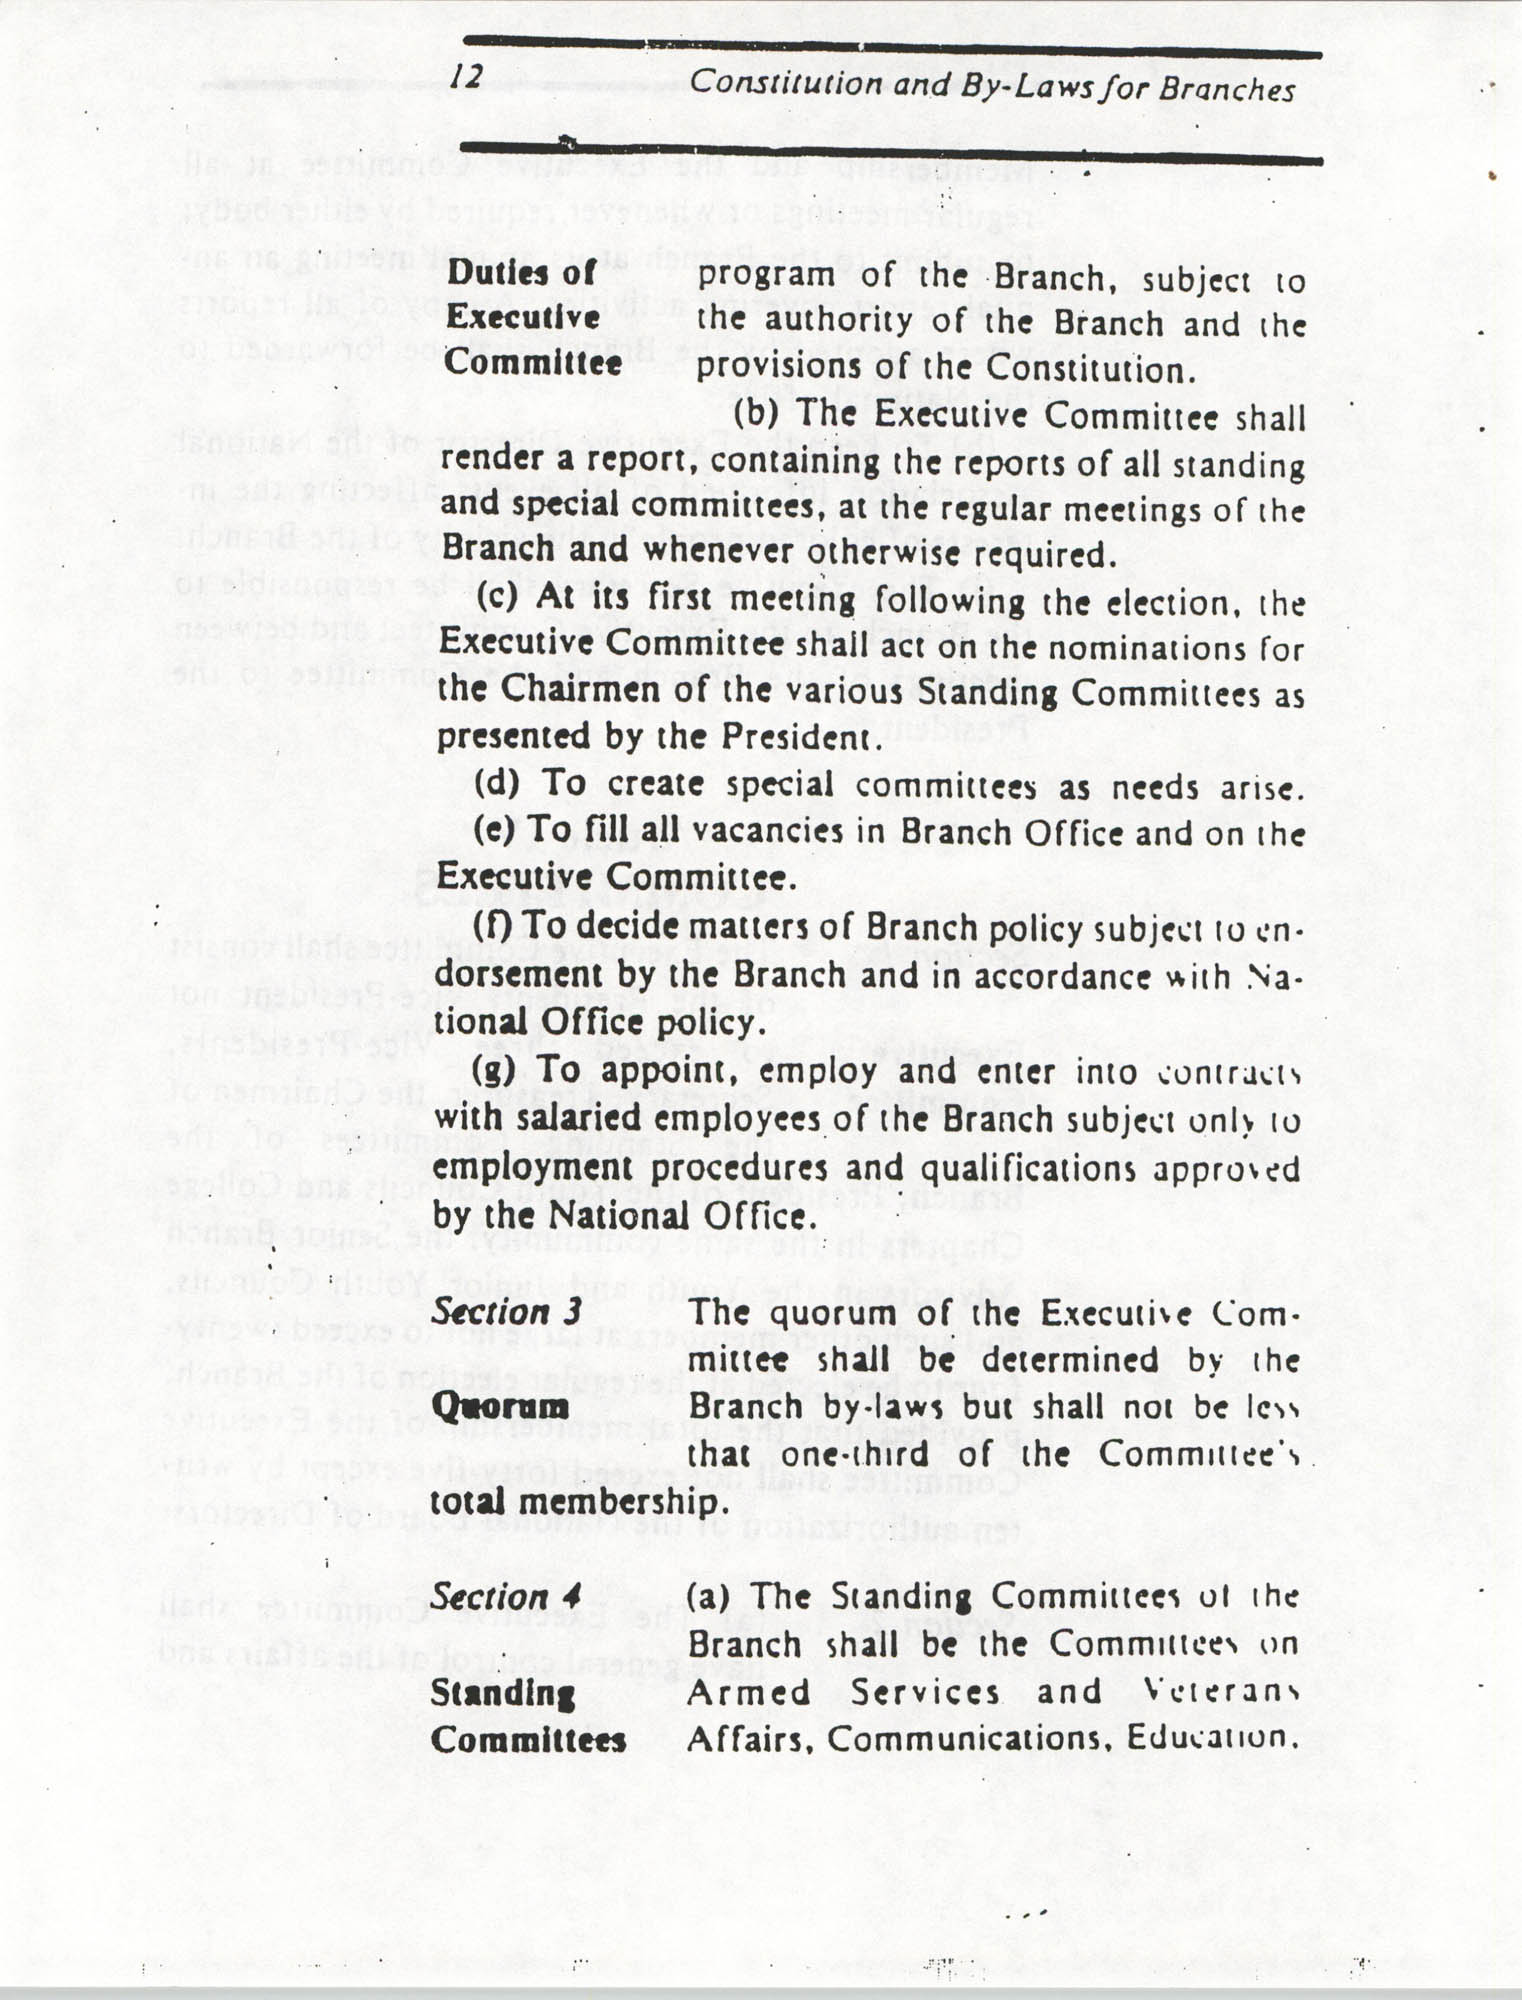 Constitution and By-Laws for Branches of the NAACP, March 1992, Page 12